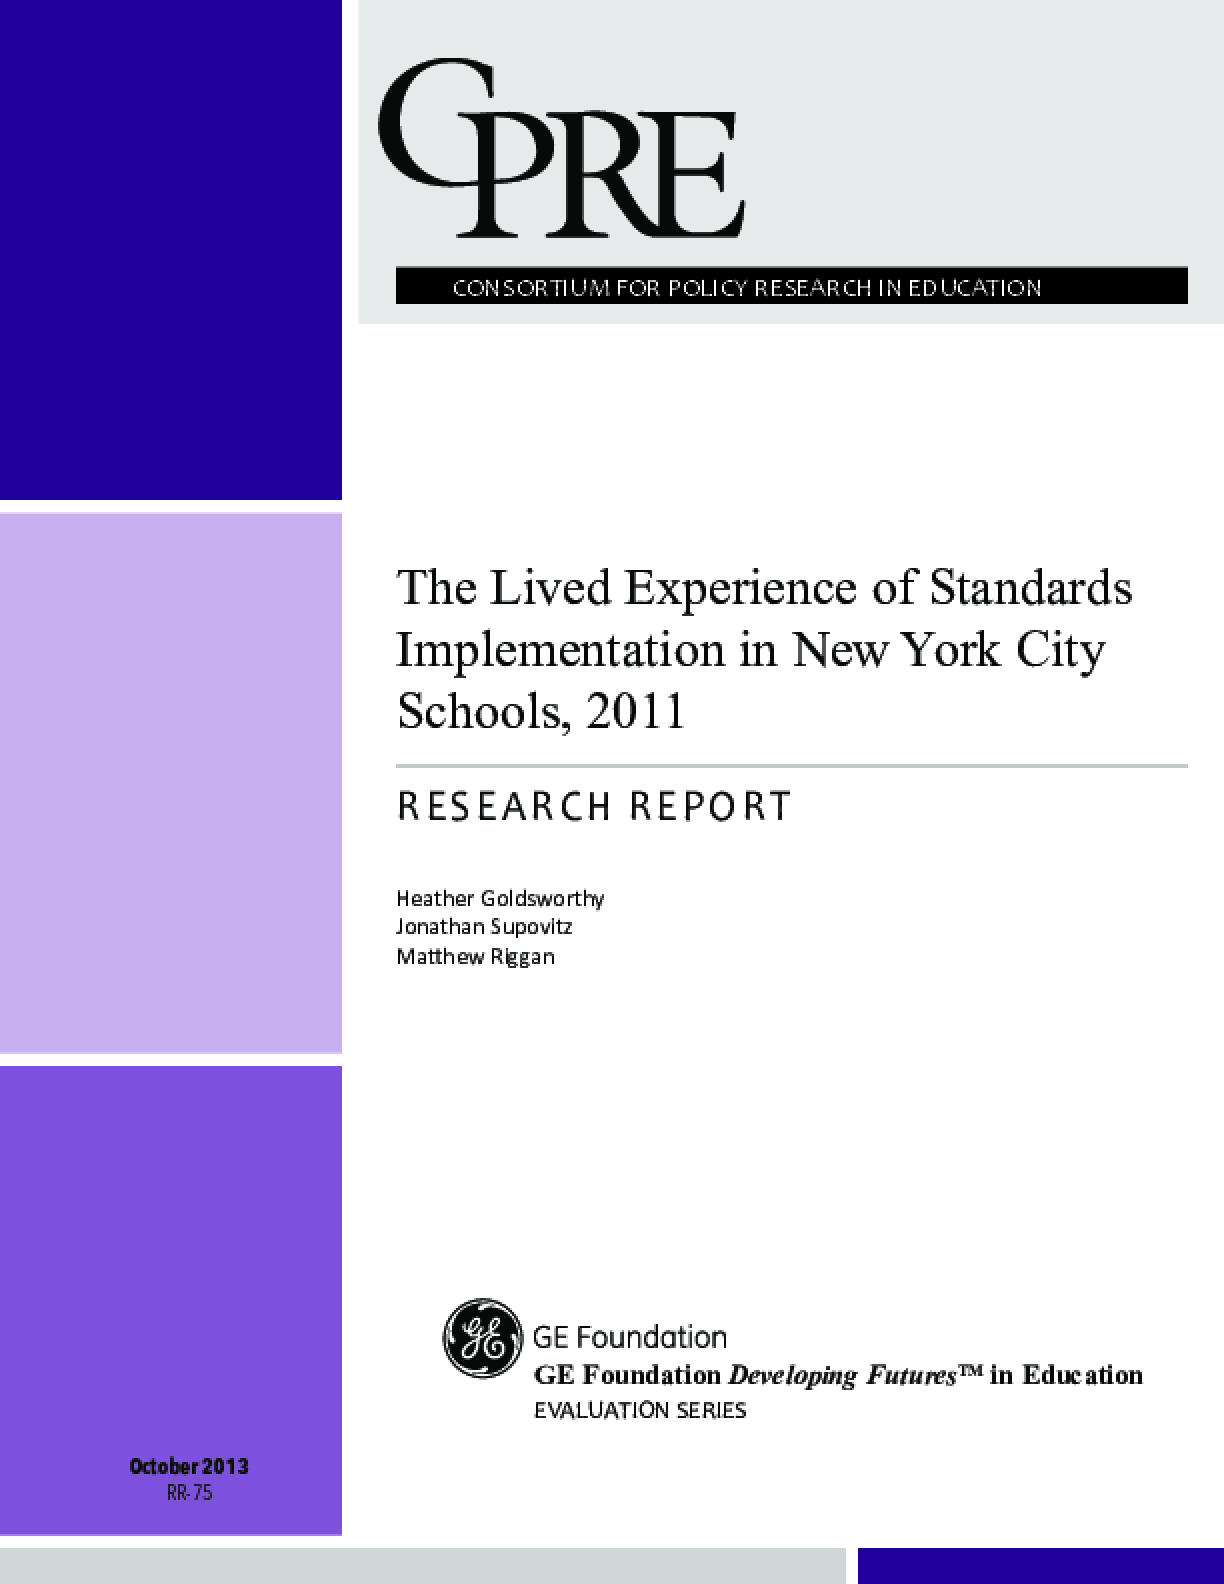 The Lived Experience of Standards Implementation in New York City Schools, 2011